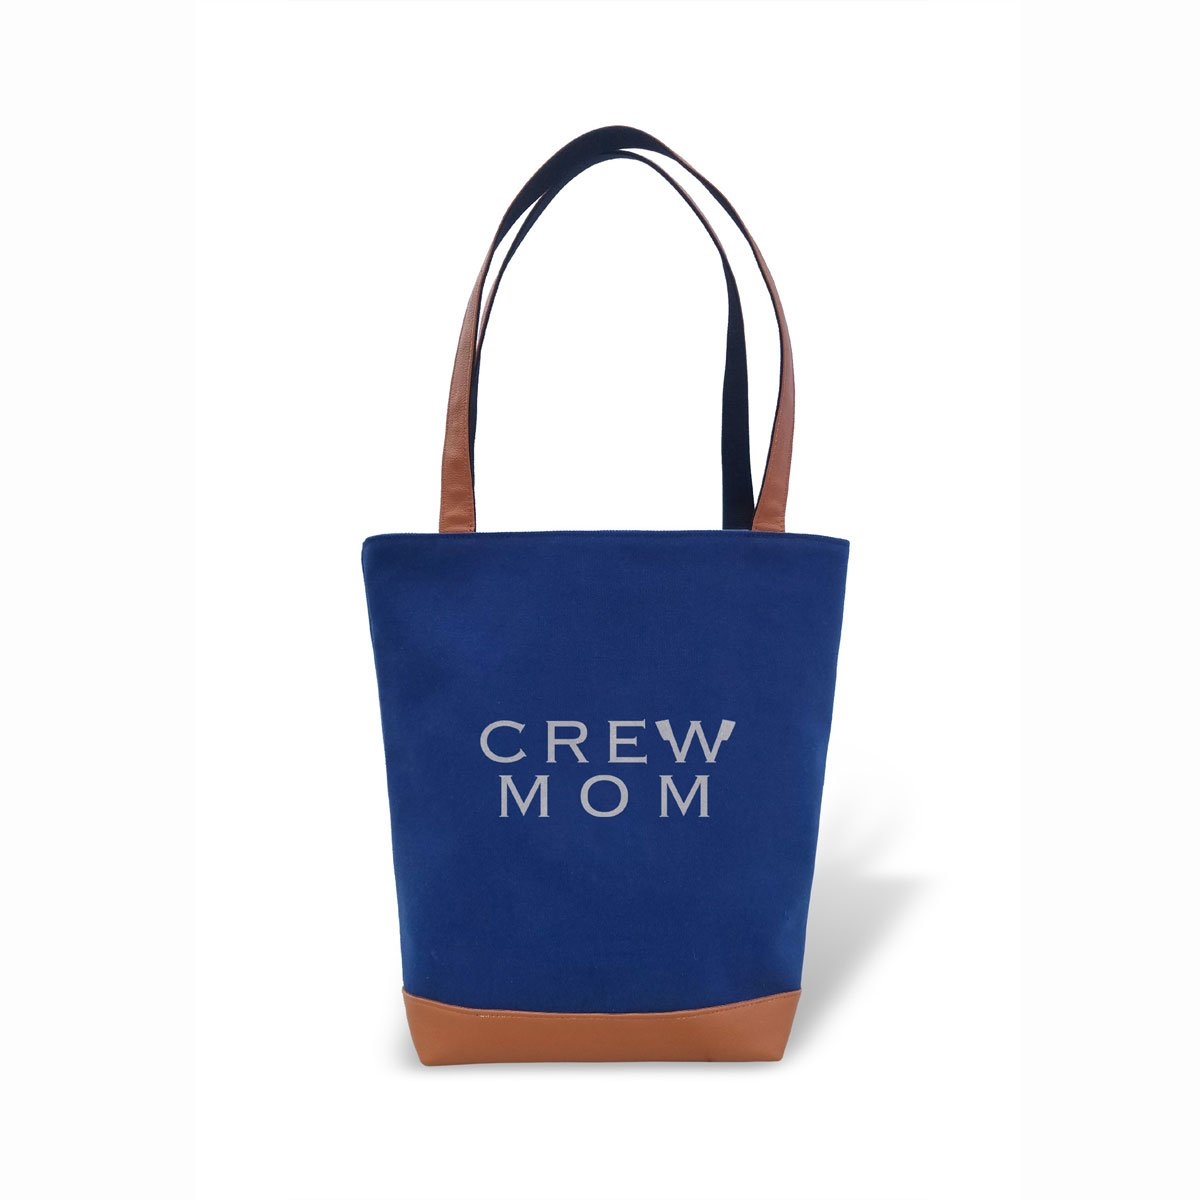 Tote Bag - Crew Mom - Strokeside Designs Rowing jewelry- Rowing Gifts Ideas- Rowing Coach Gifts